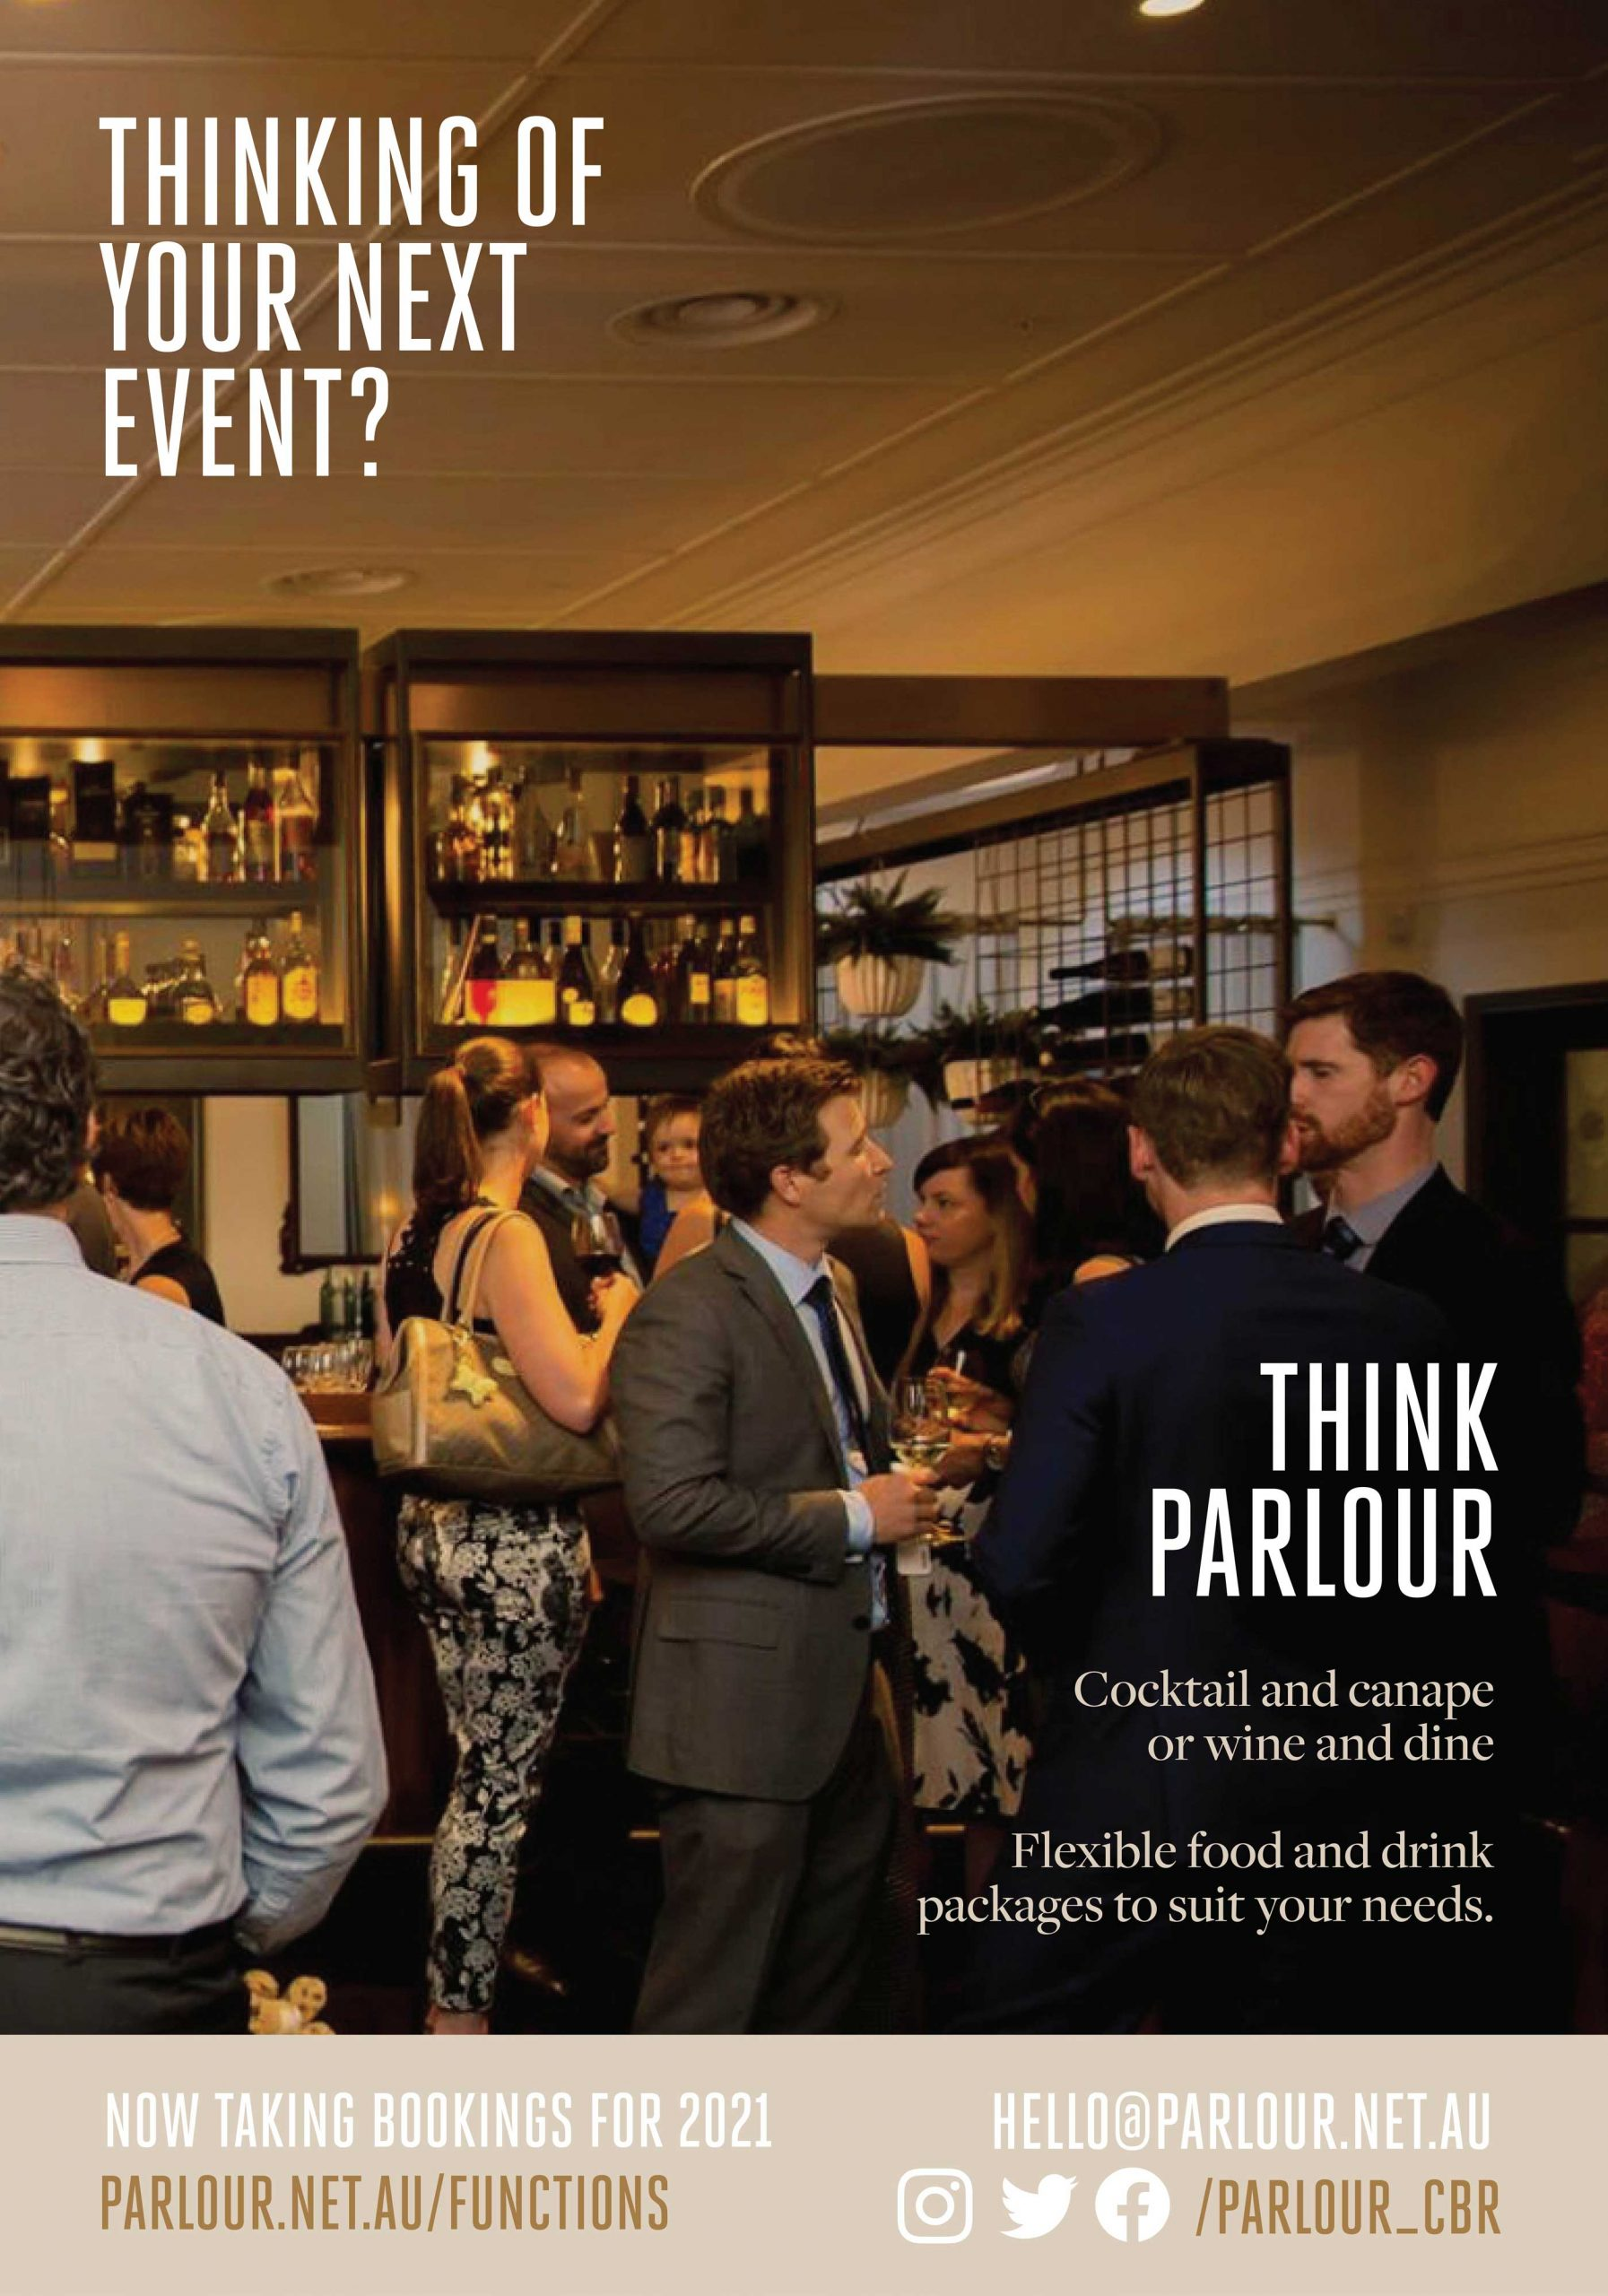 Bring the team together, Entertain your clients - Functions at Parlour